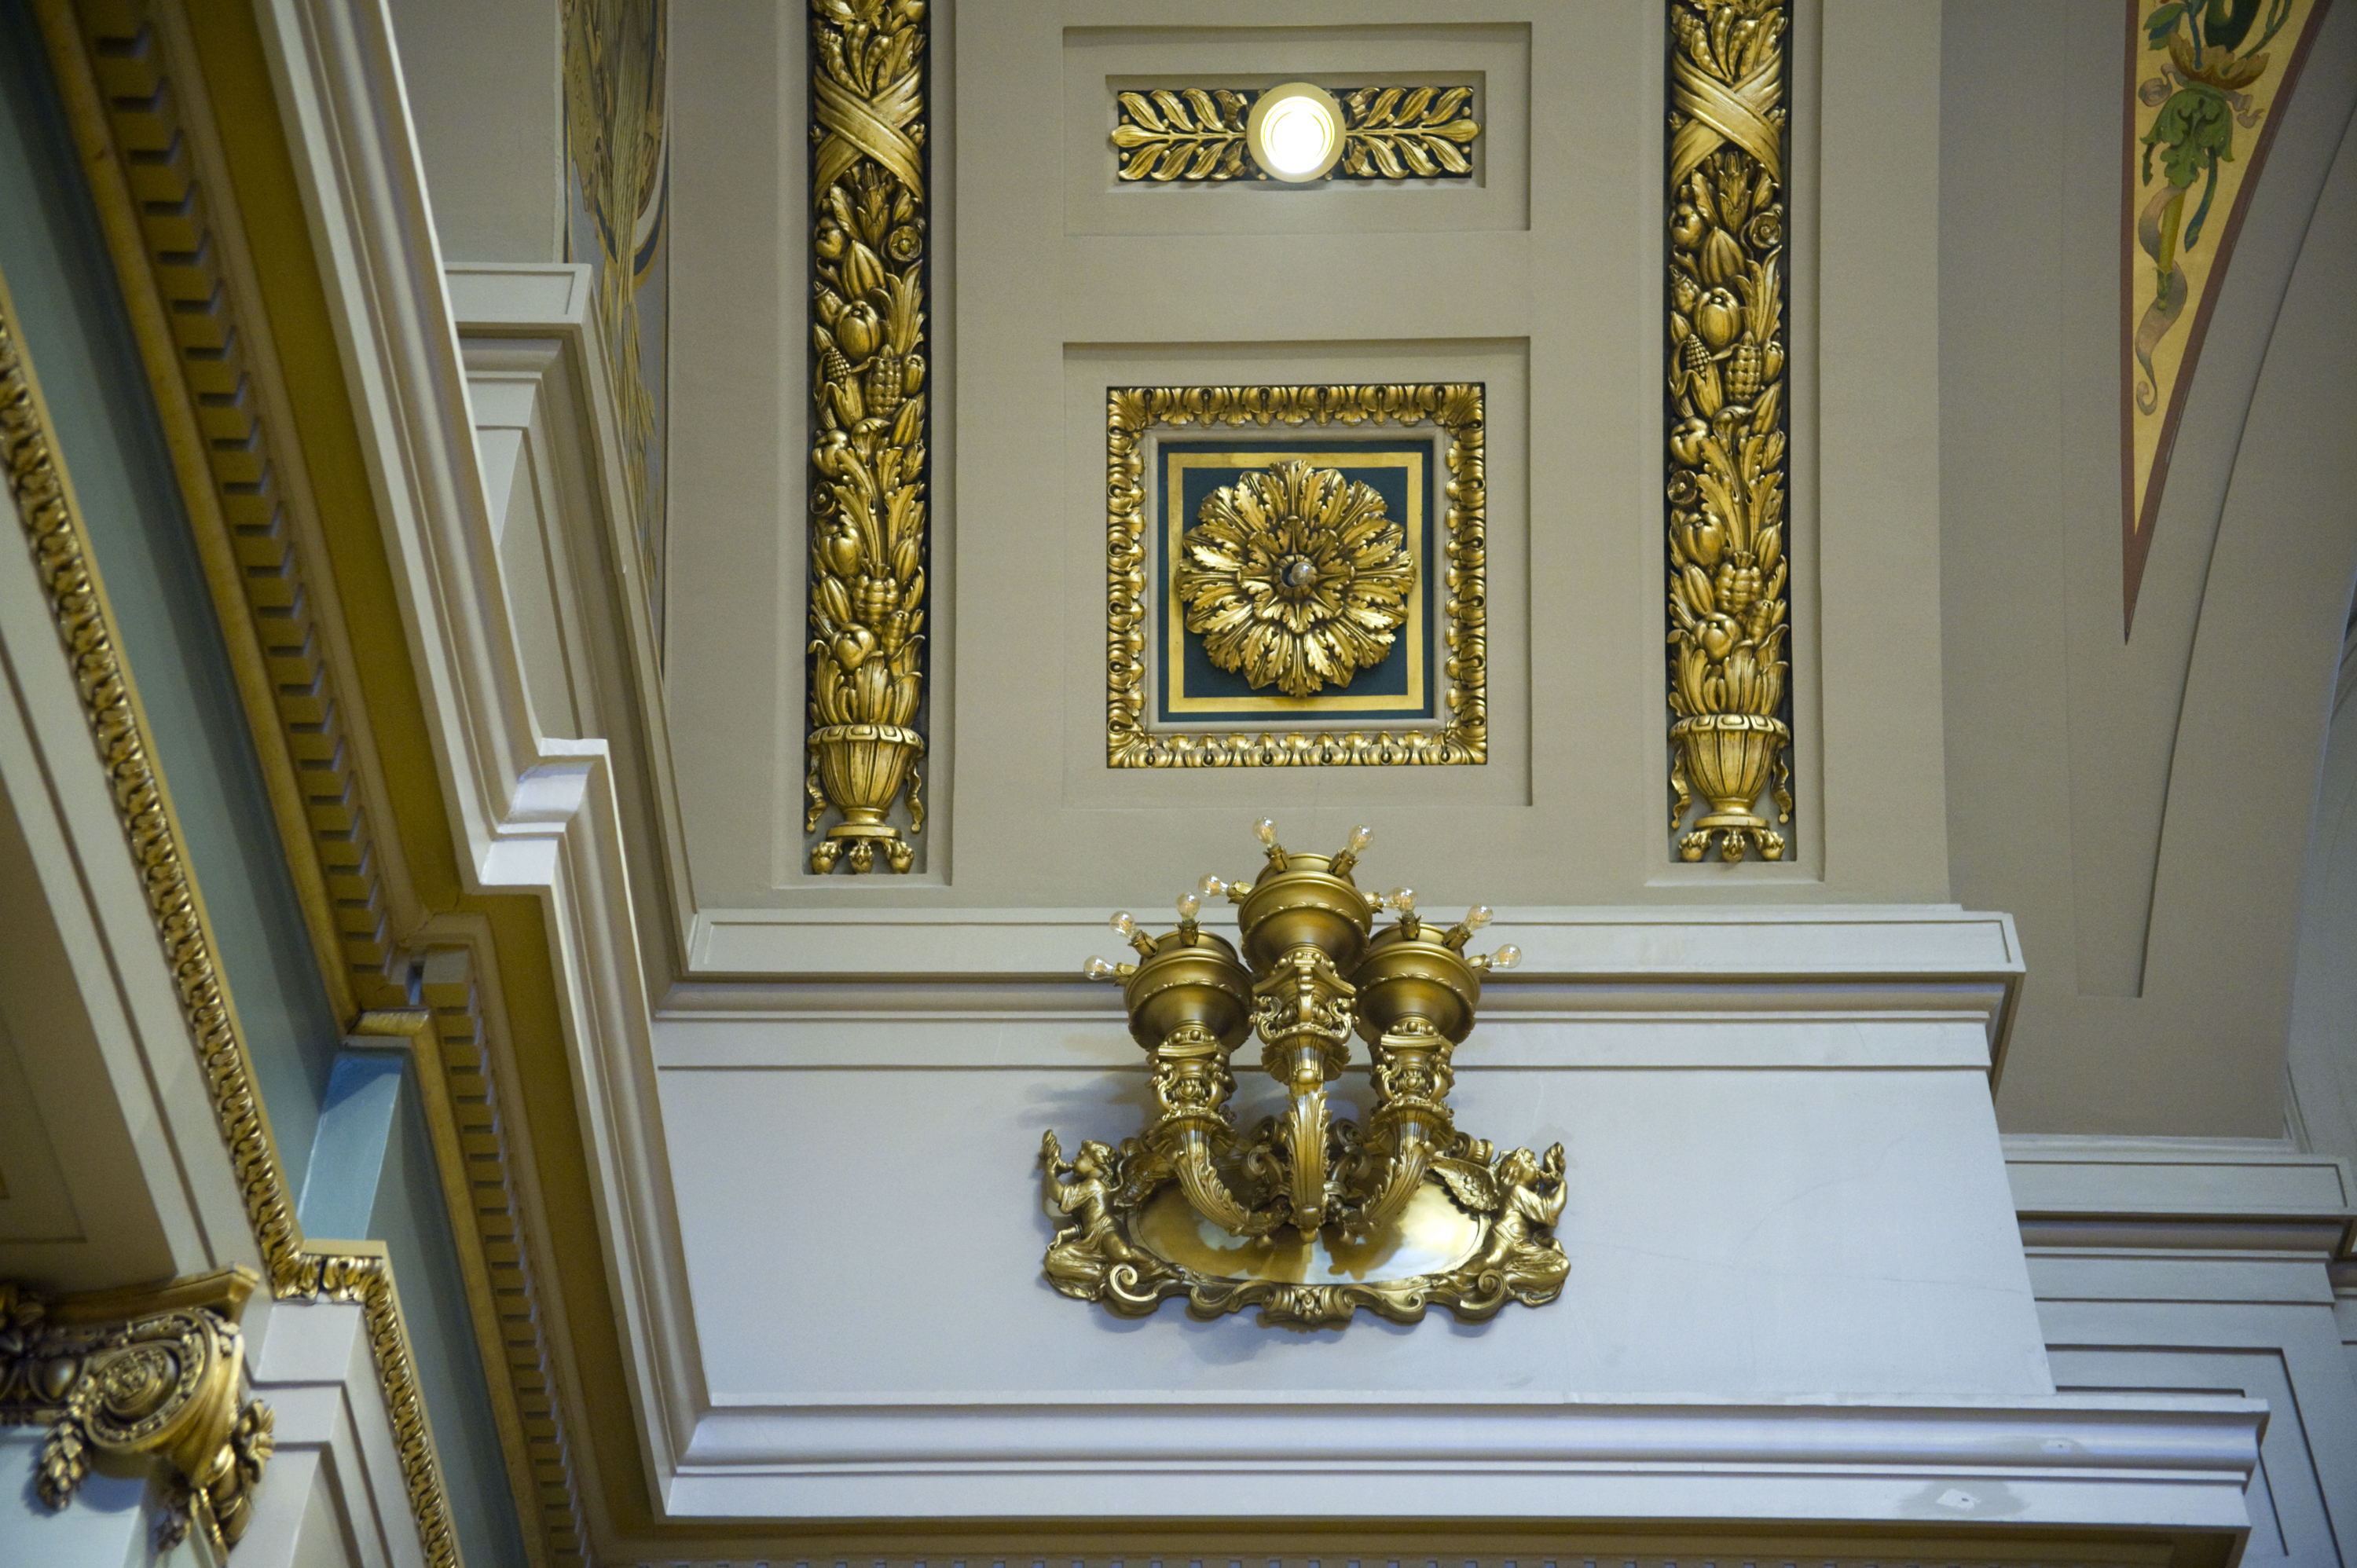 Sconce and ceiling, photo by Tom Olmscheid